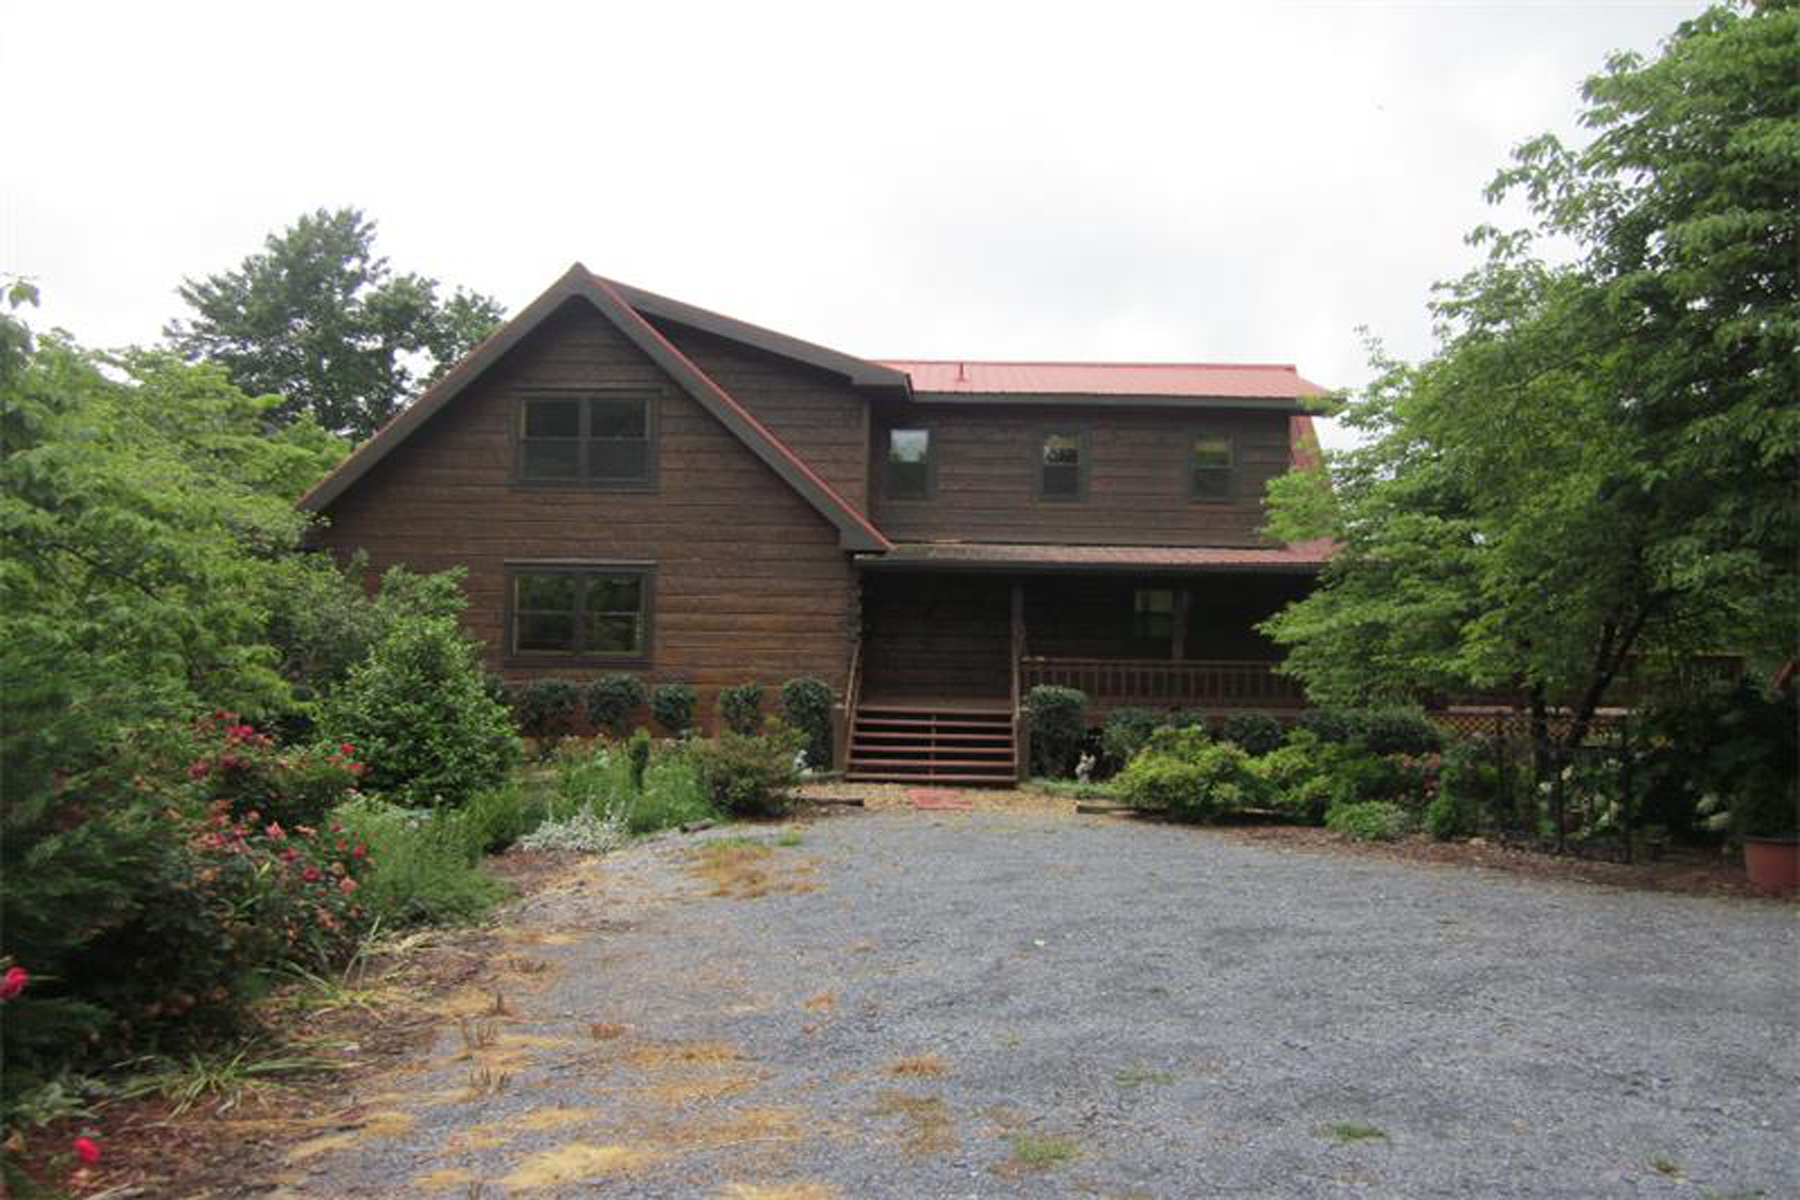 独户住宅 为 销售 在 Secluded Log Cabin Retreat On 32+- Acres 619 Family Acres Lane Ranger, 乔治亚州, 30734 美国